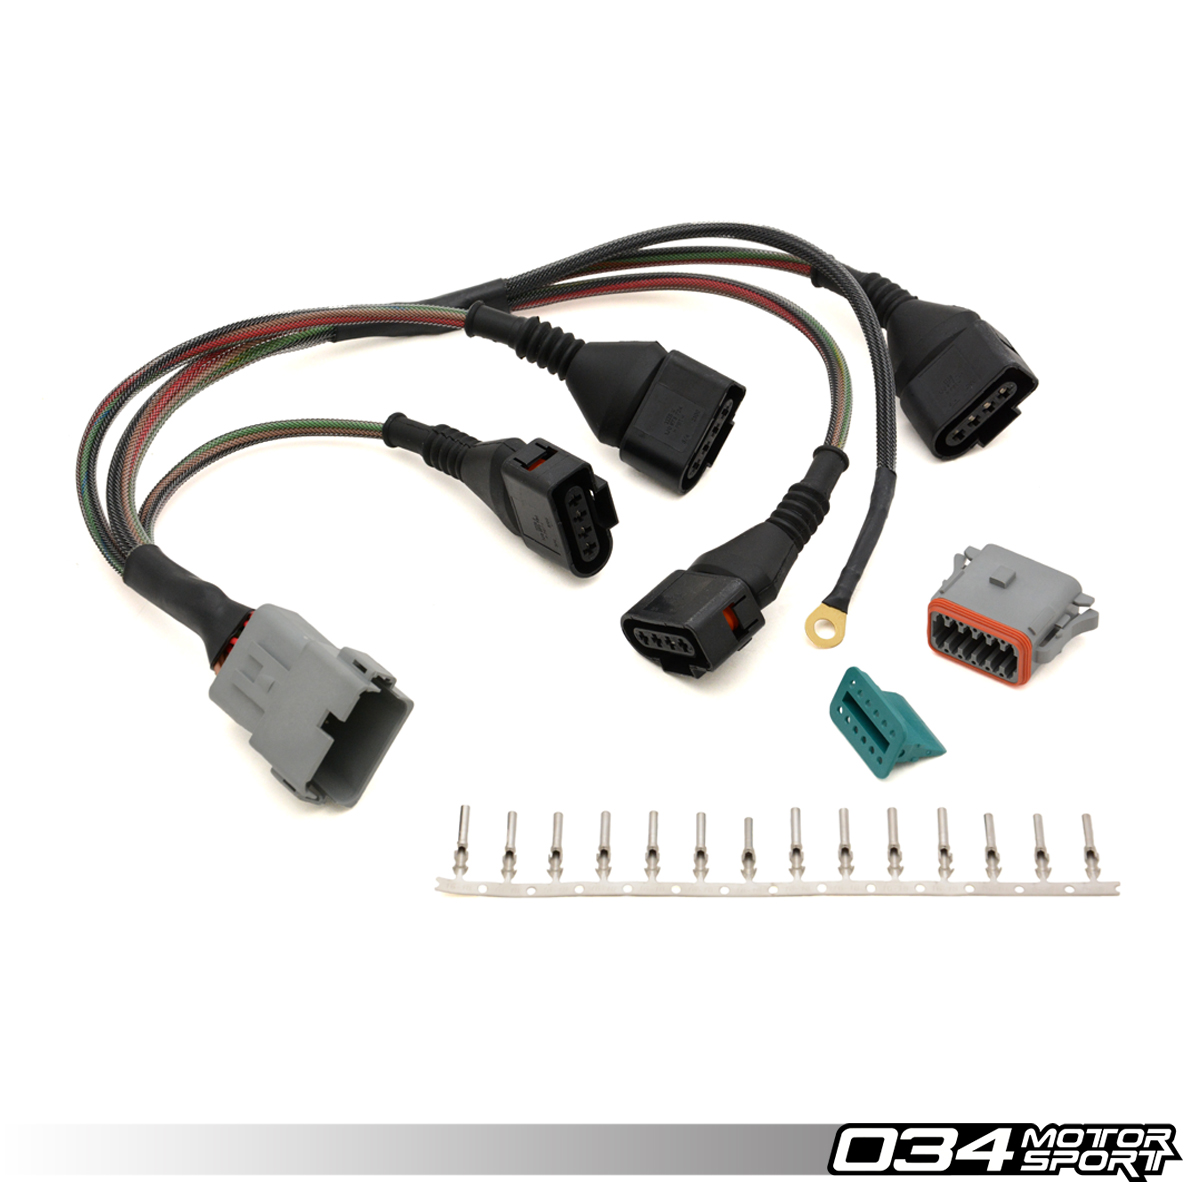 Wiring Harness Plug For 2004 4 0 V6 - Basic Wiring Diagram •